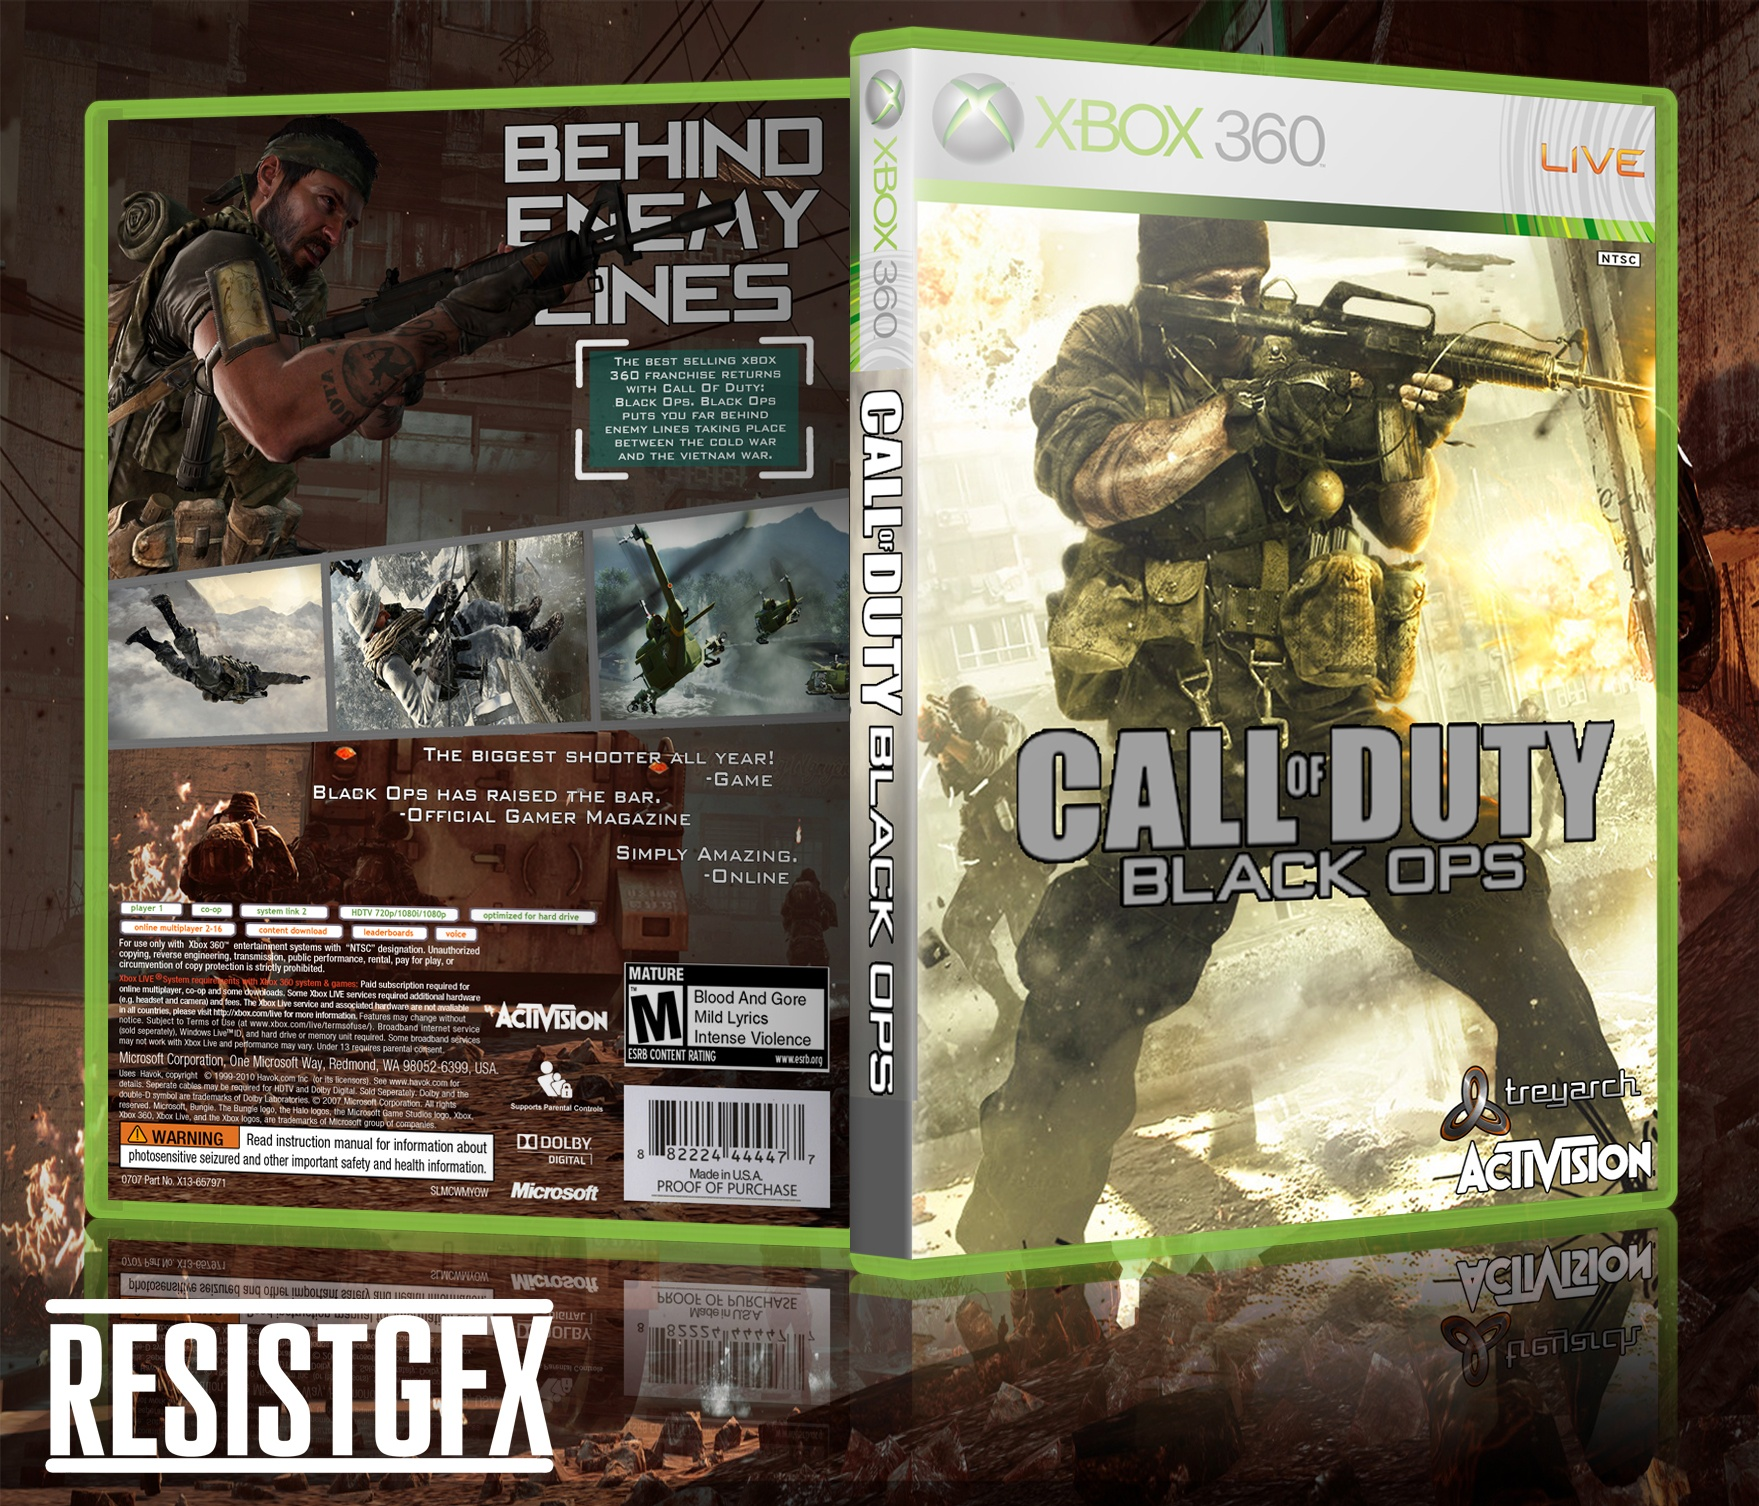 Viewing Full Size Call Of Duty Black Ops Box Cover